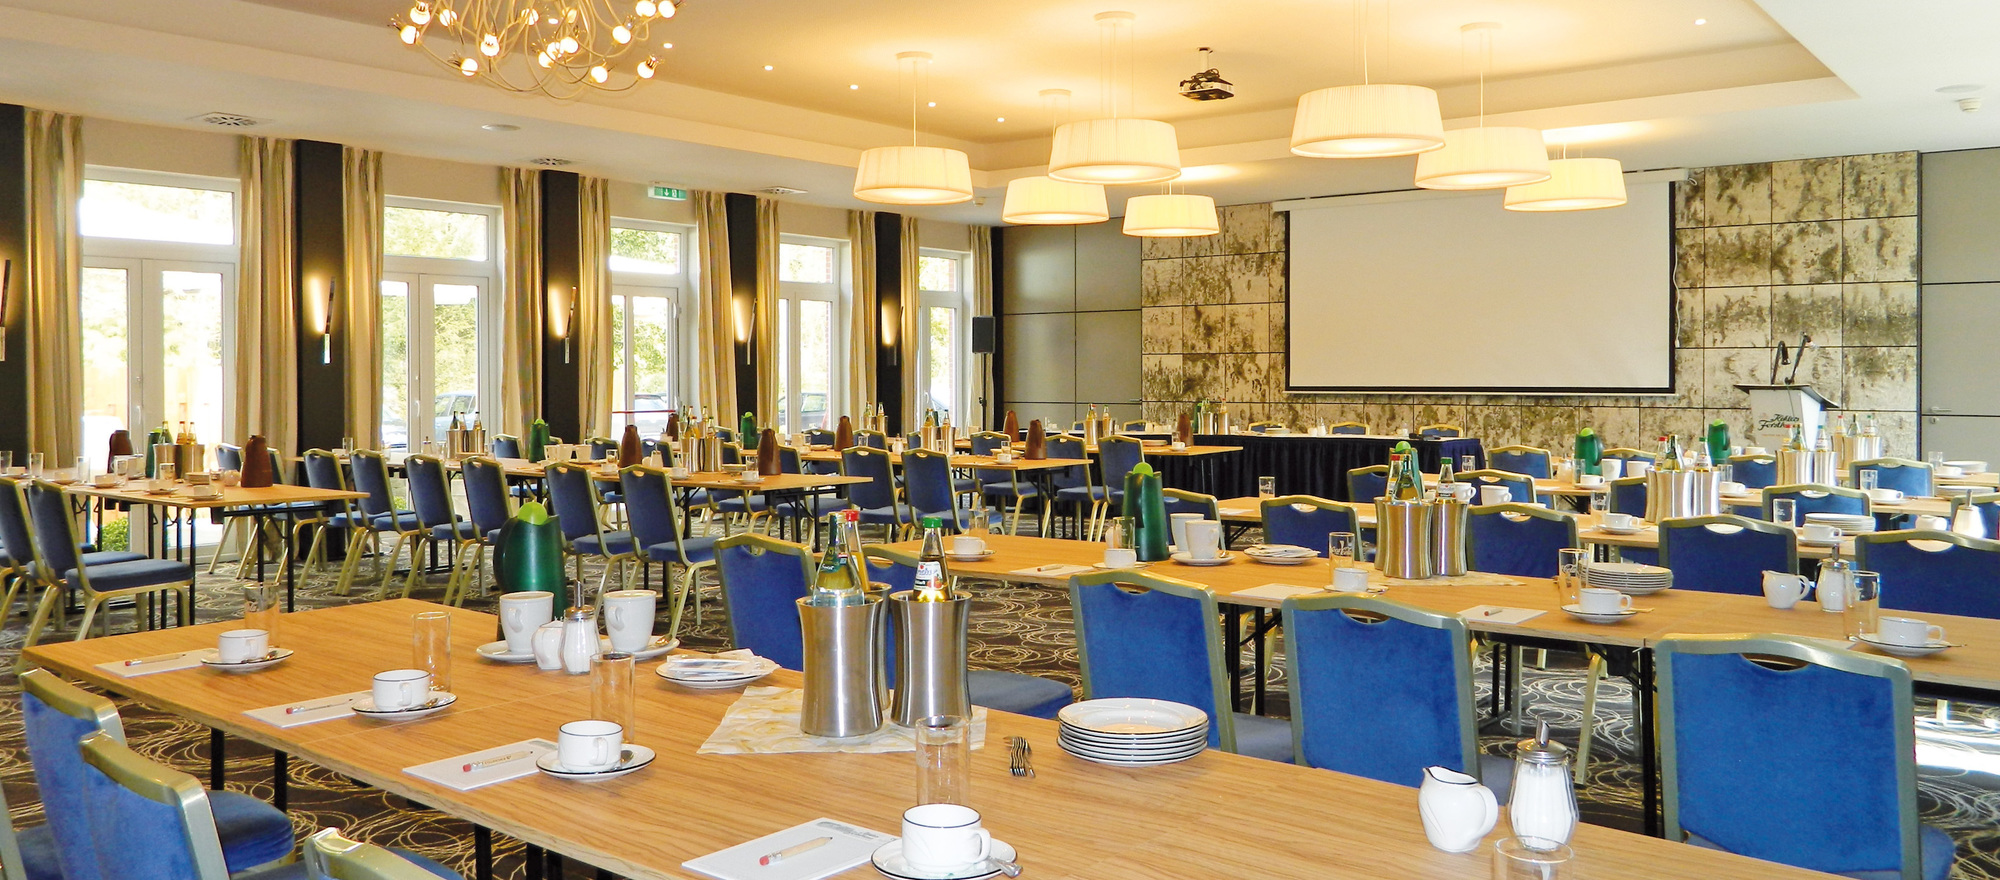 Conference room in the Ringhotel Koehlers Forsthaus in Aurich, 4-star-hotel at the North Sea coast